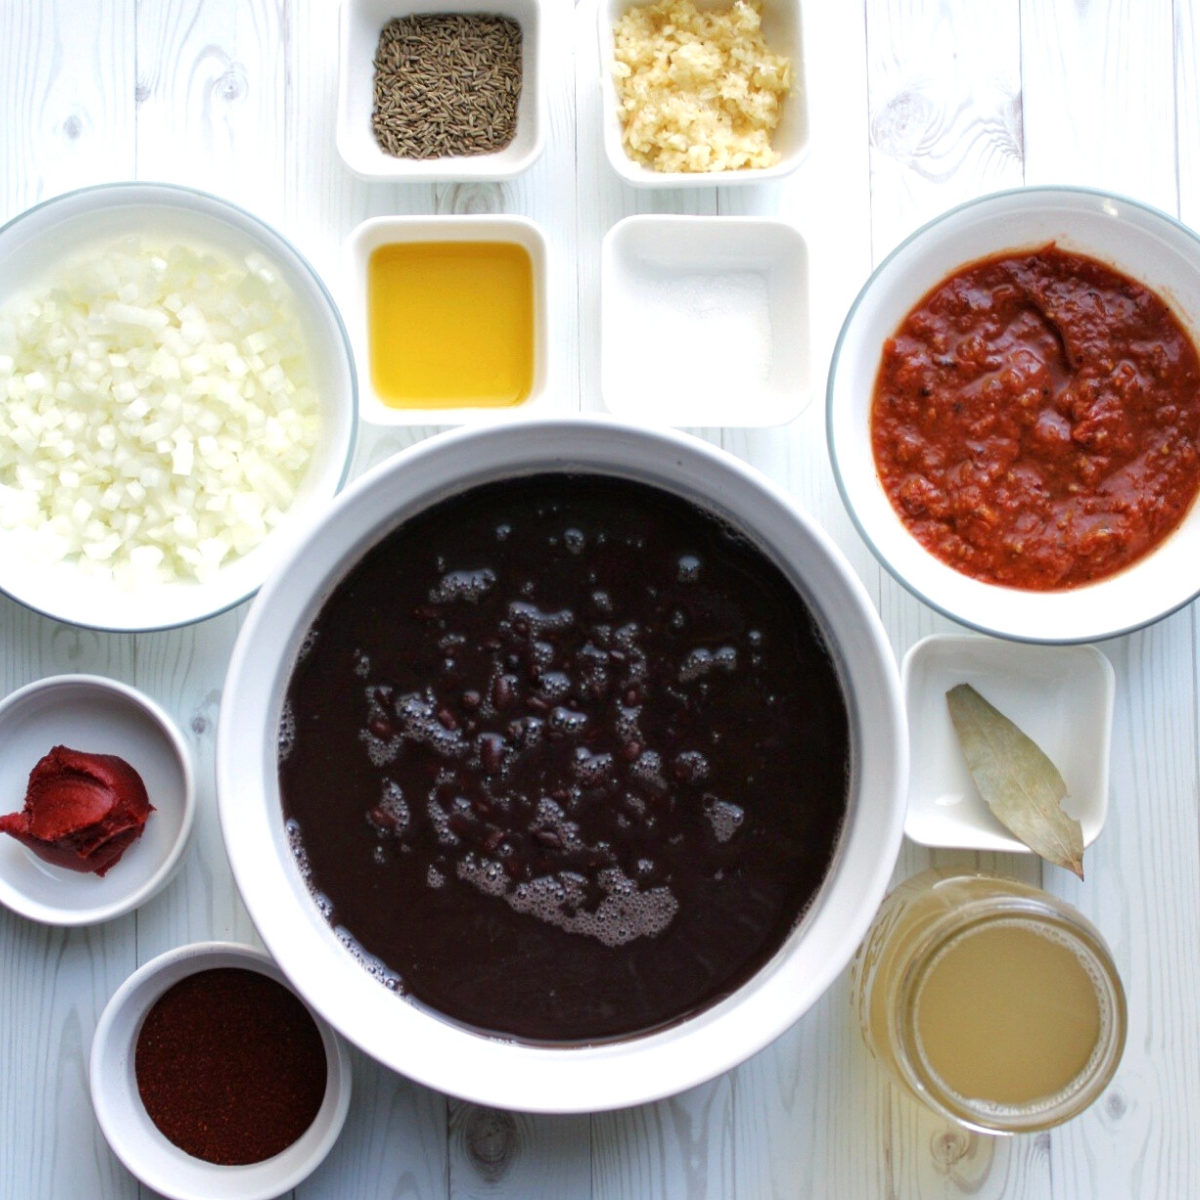 Ingredients for black bean chili.